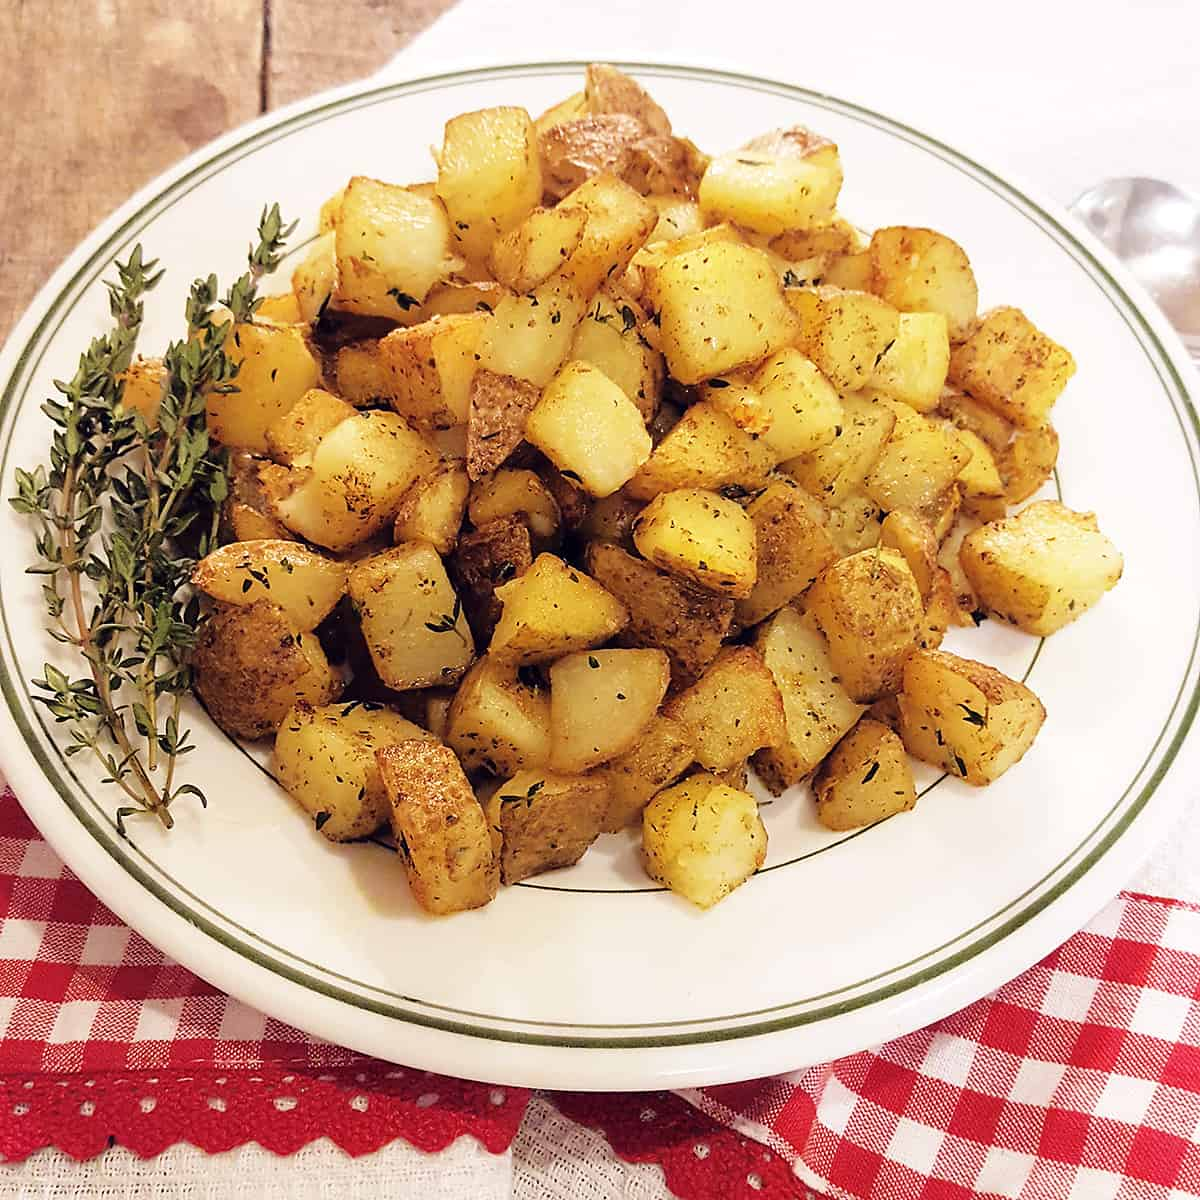 Home Fries on a serving plate with a kitchen towel in the background.